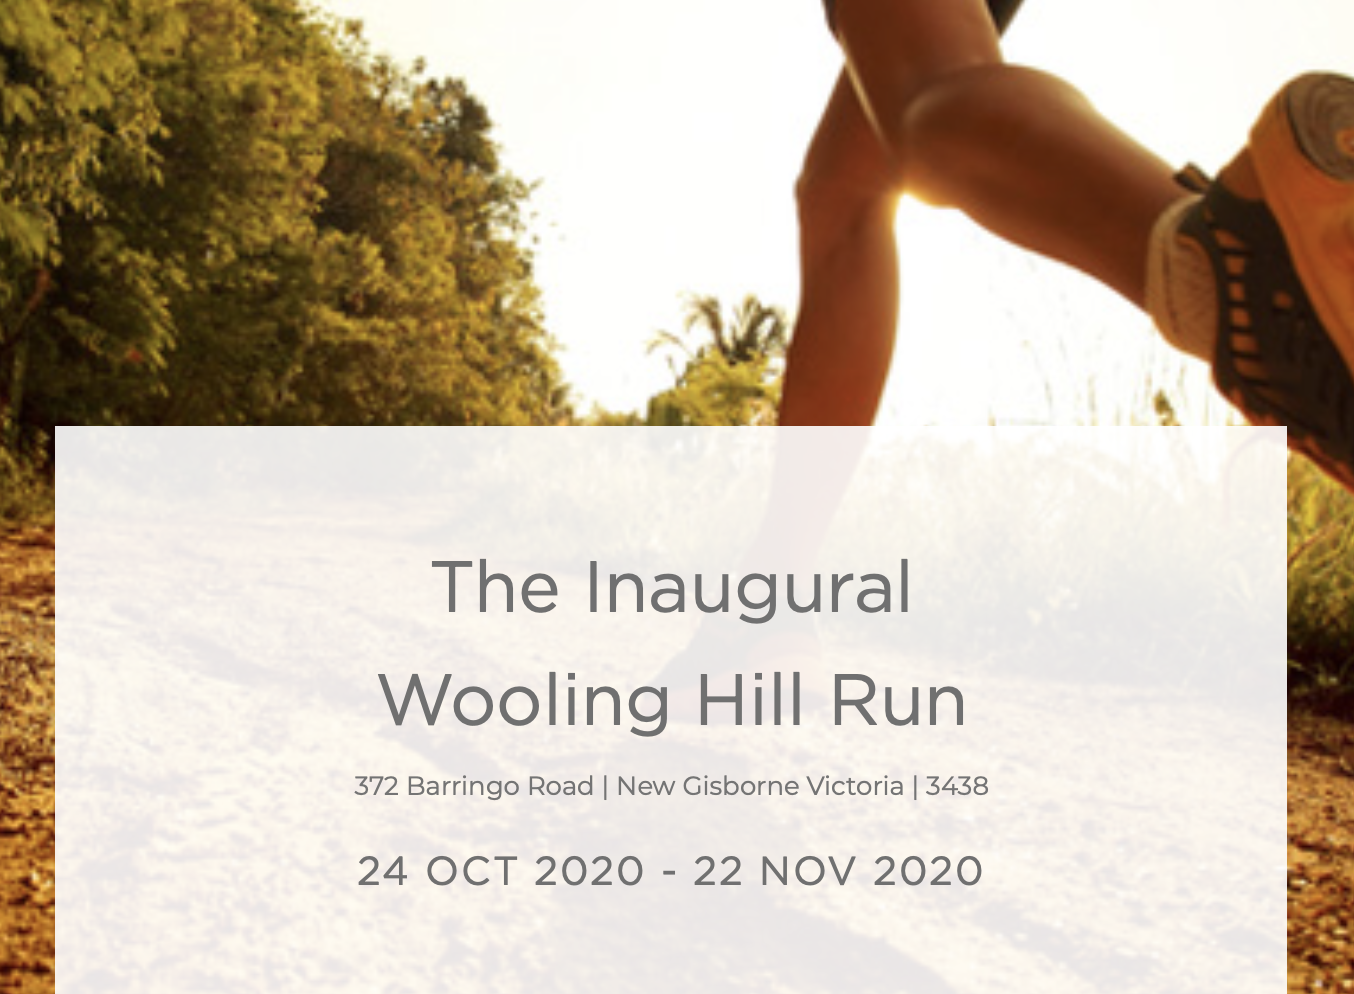 The Inaugural Wooling Hill Run